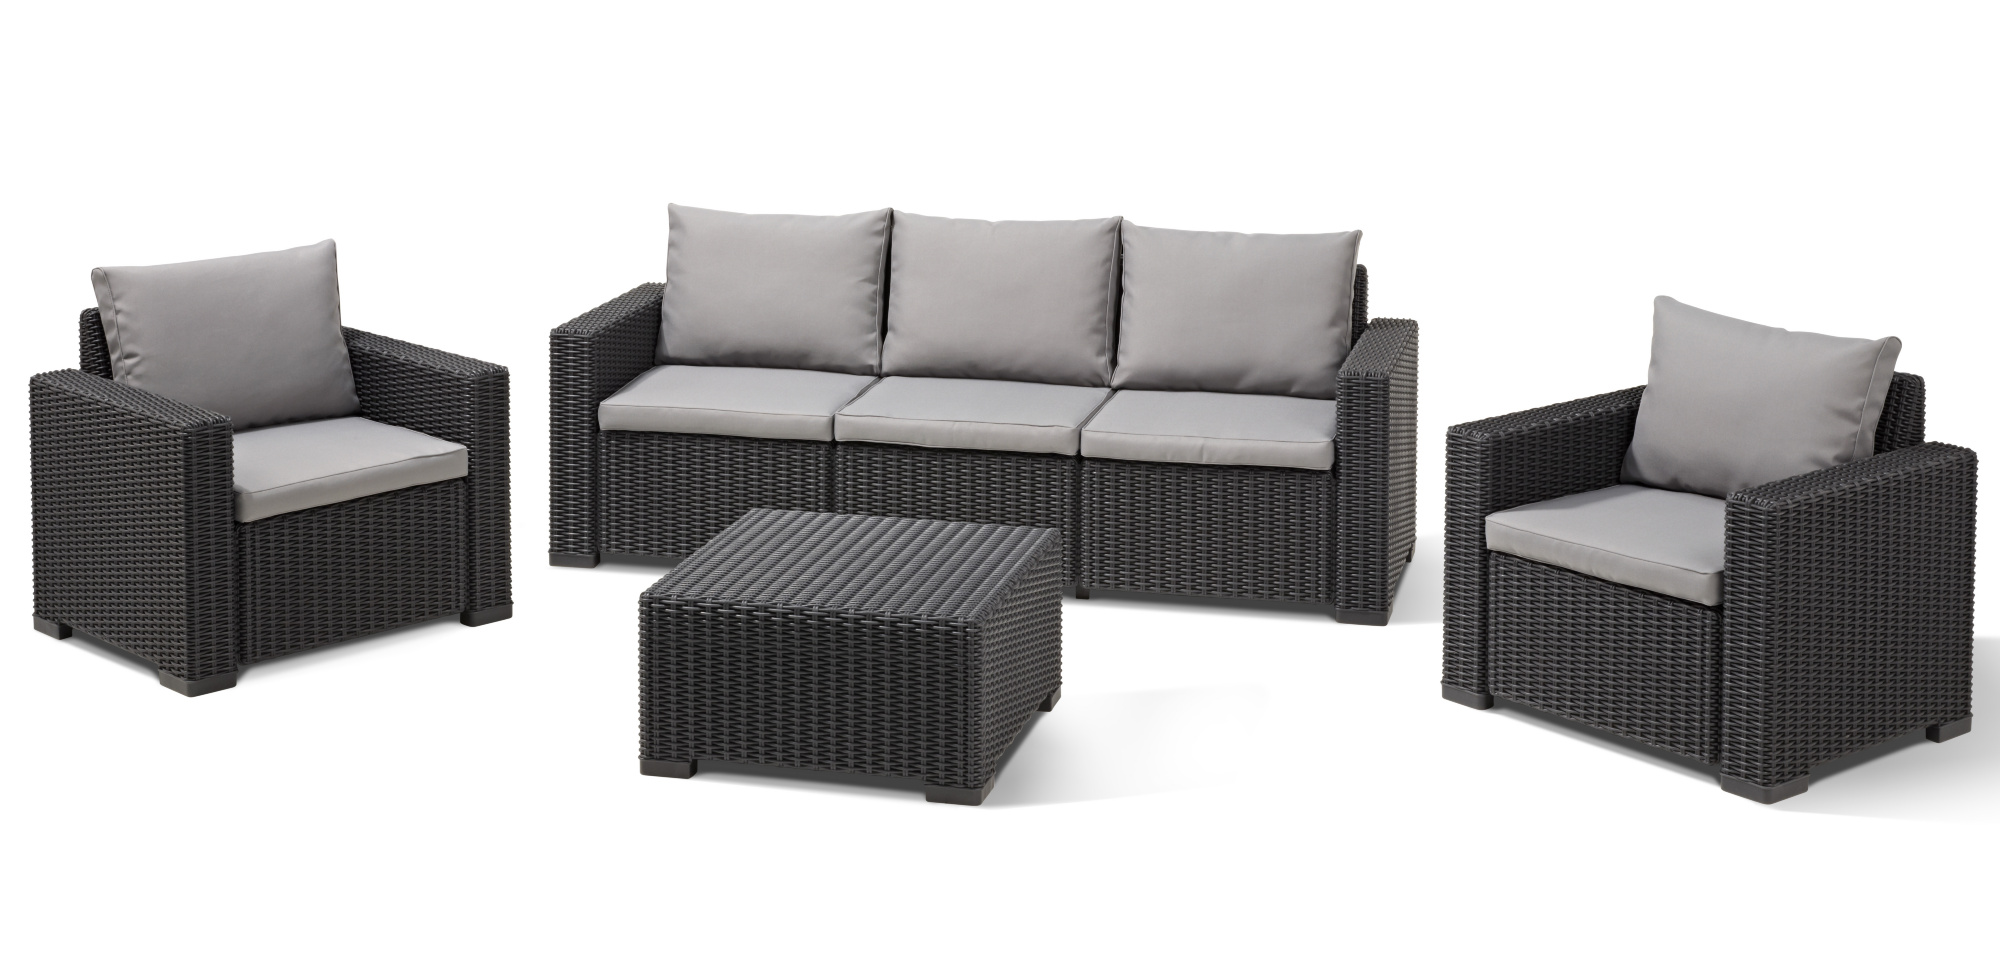 ALLIBERT California Lounge Set Graphit Dreisitzer-Sofa ...